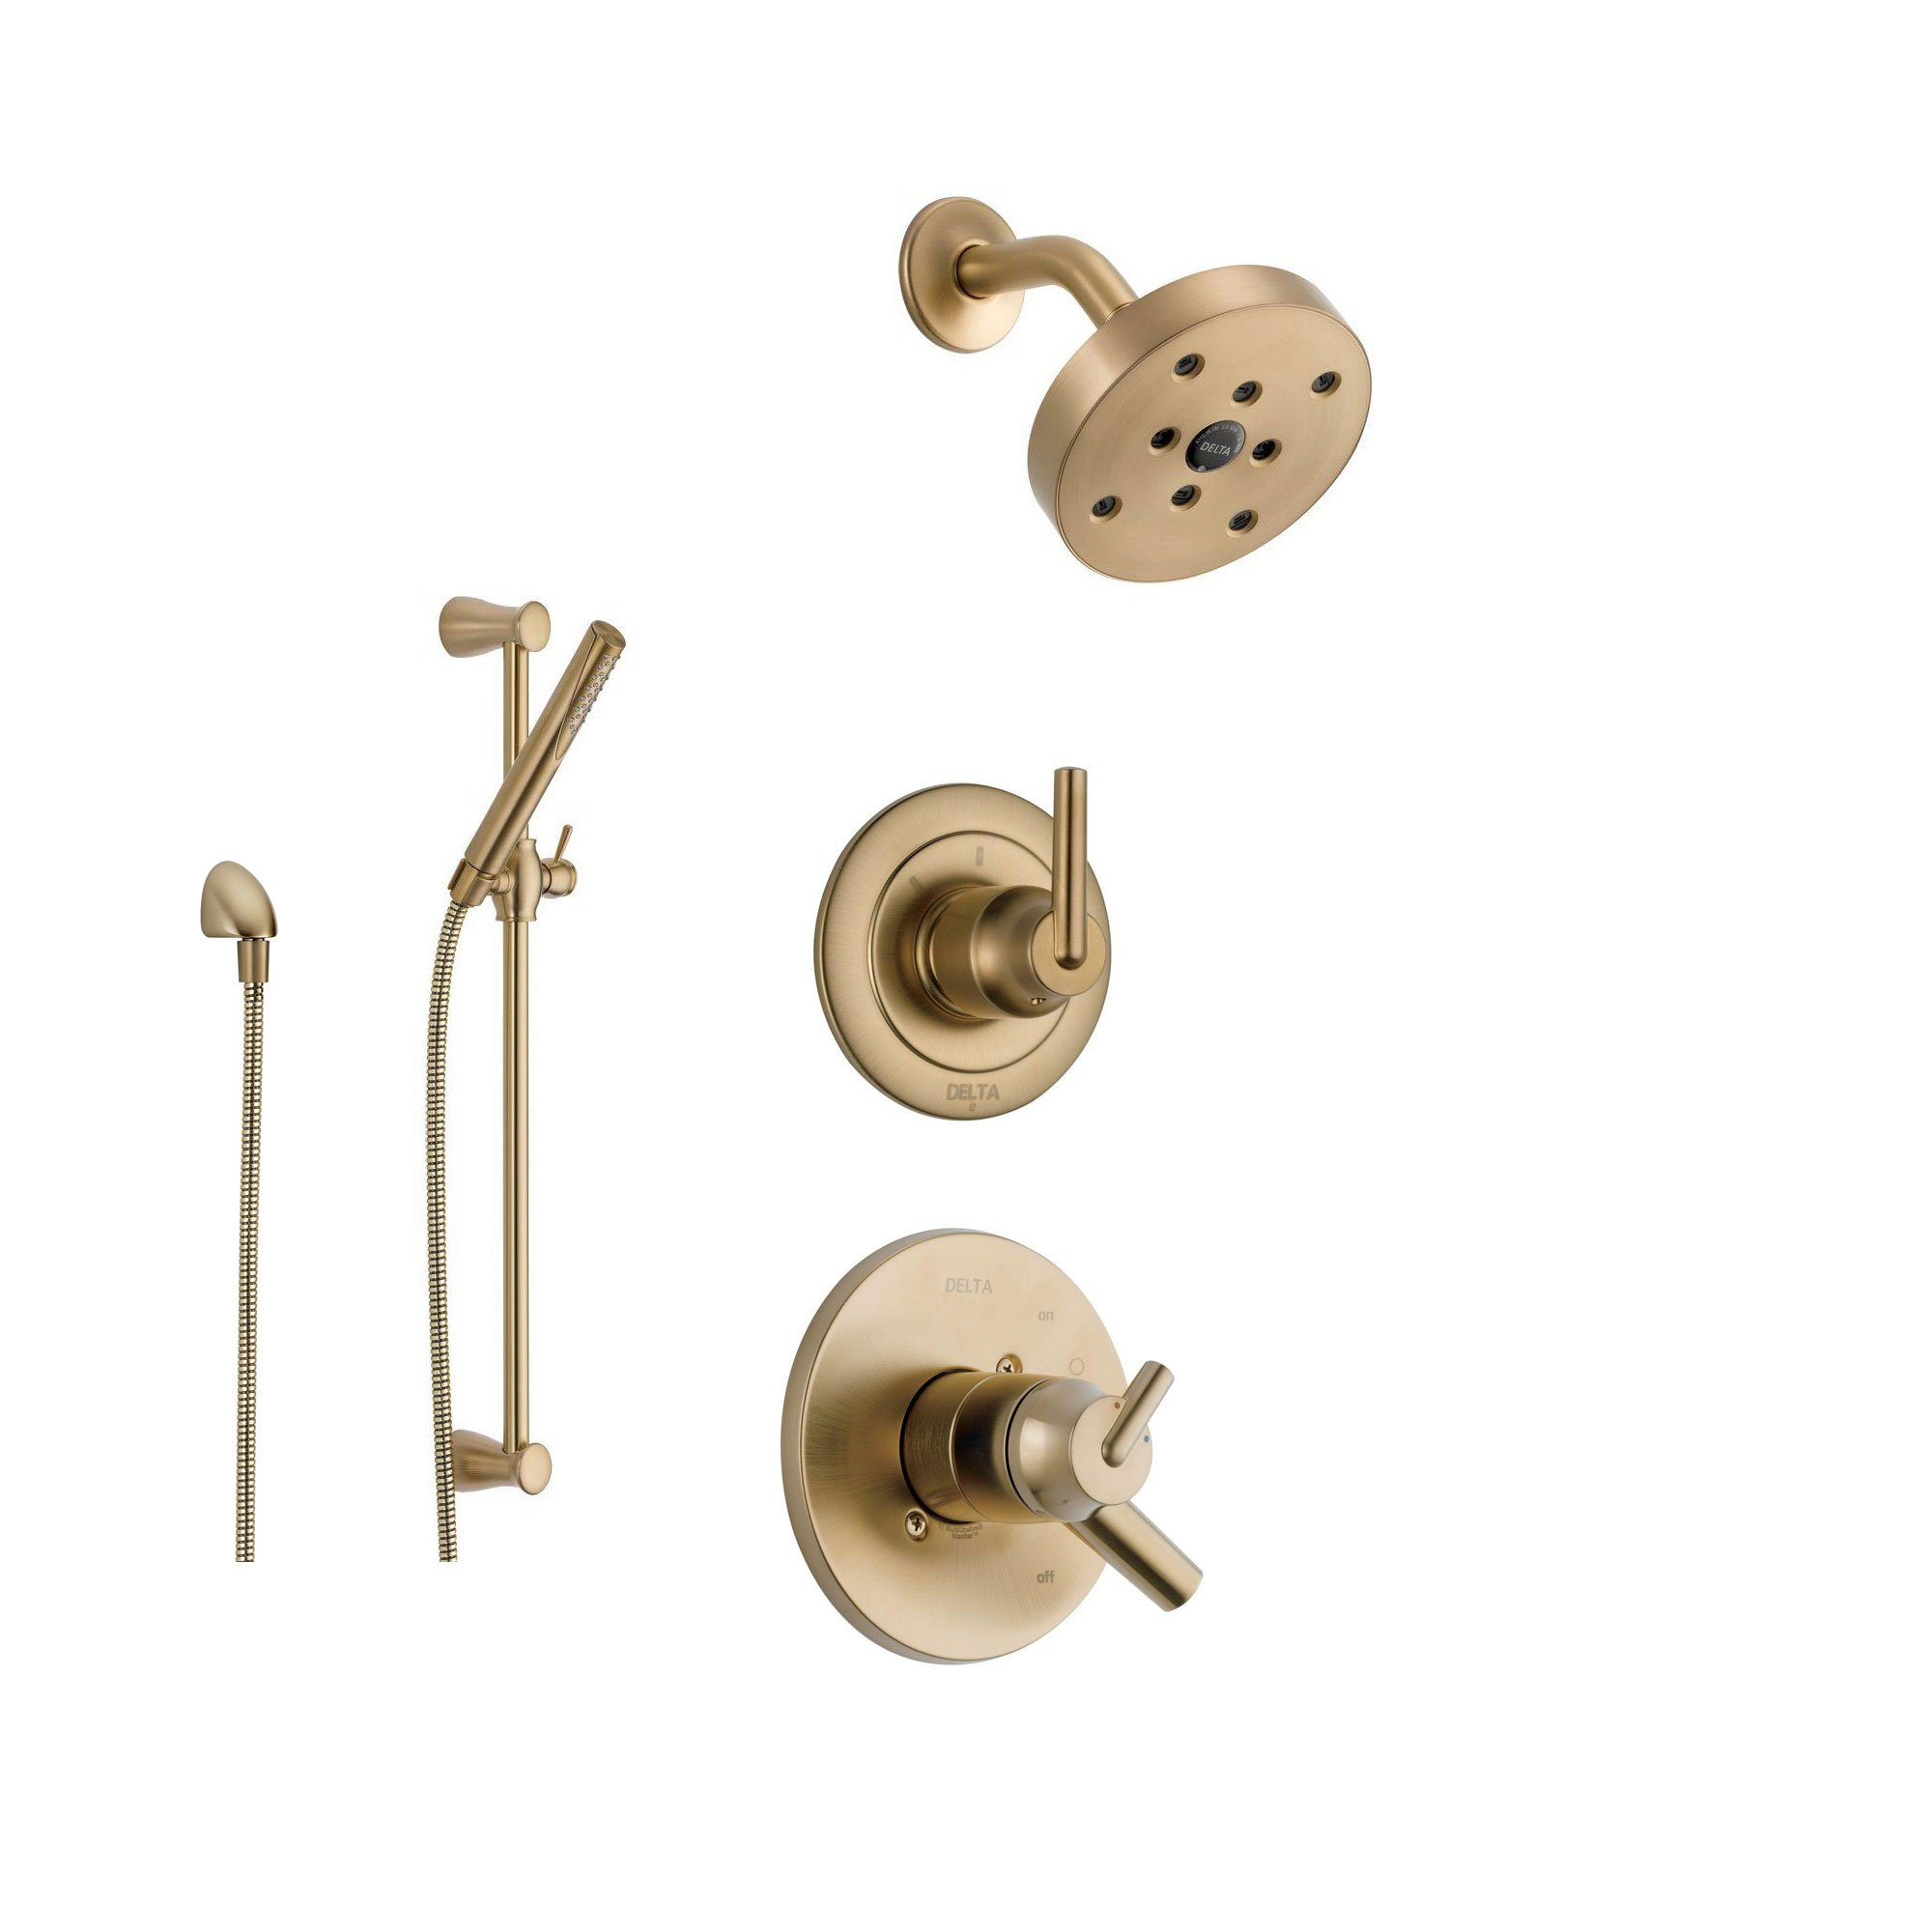 Delta Trinsic Champagne Bronze Shower System with Dual Control Shower Handle, 3-setting Diverter, Modern Round Showerhead, and Handheld Shower SS175981CZ by DELTA FAUCET